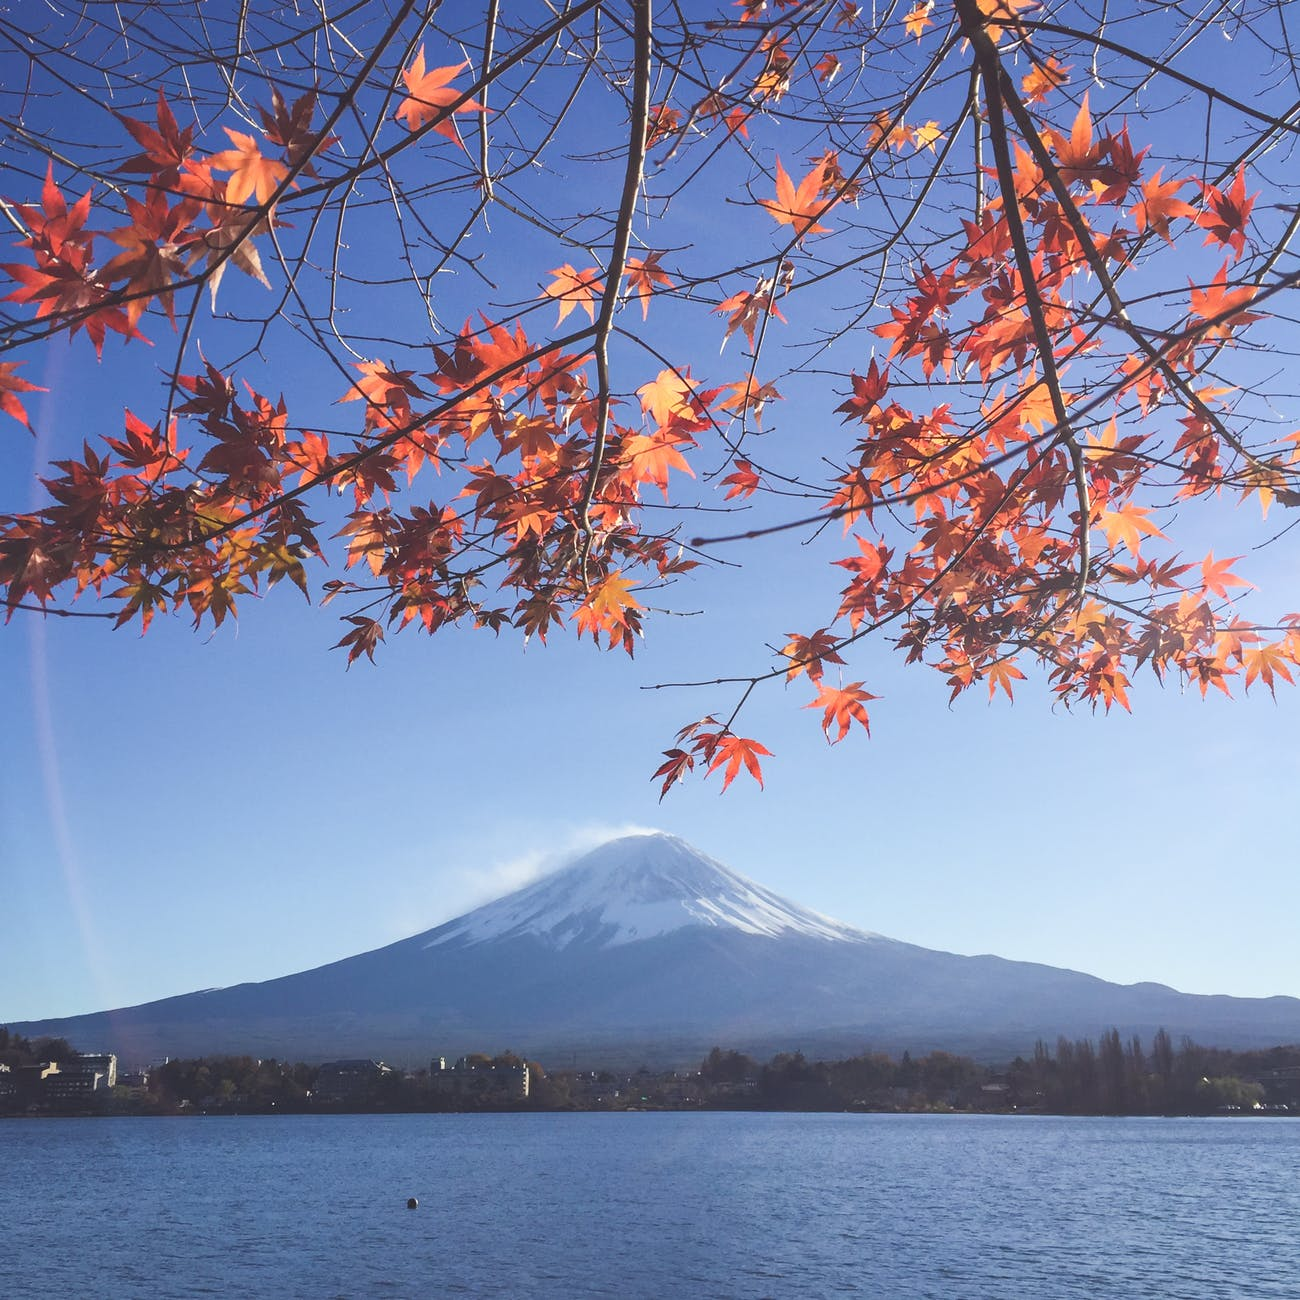 scenic view of mount fuji